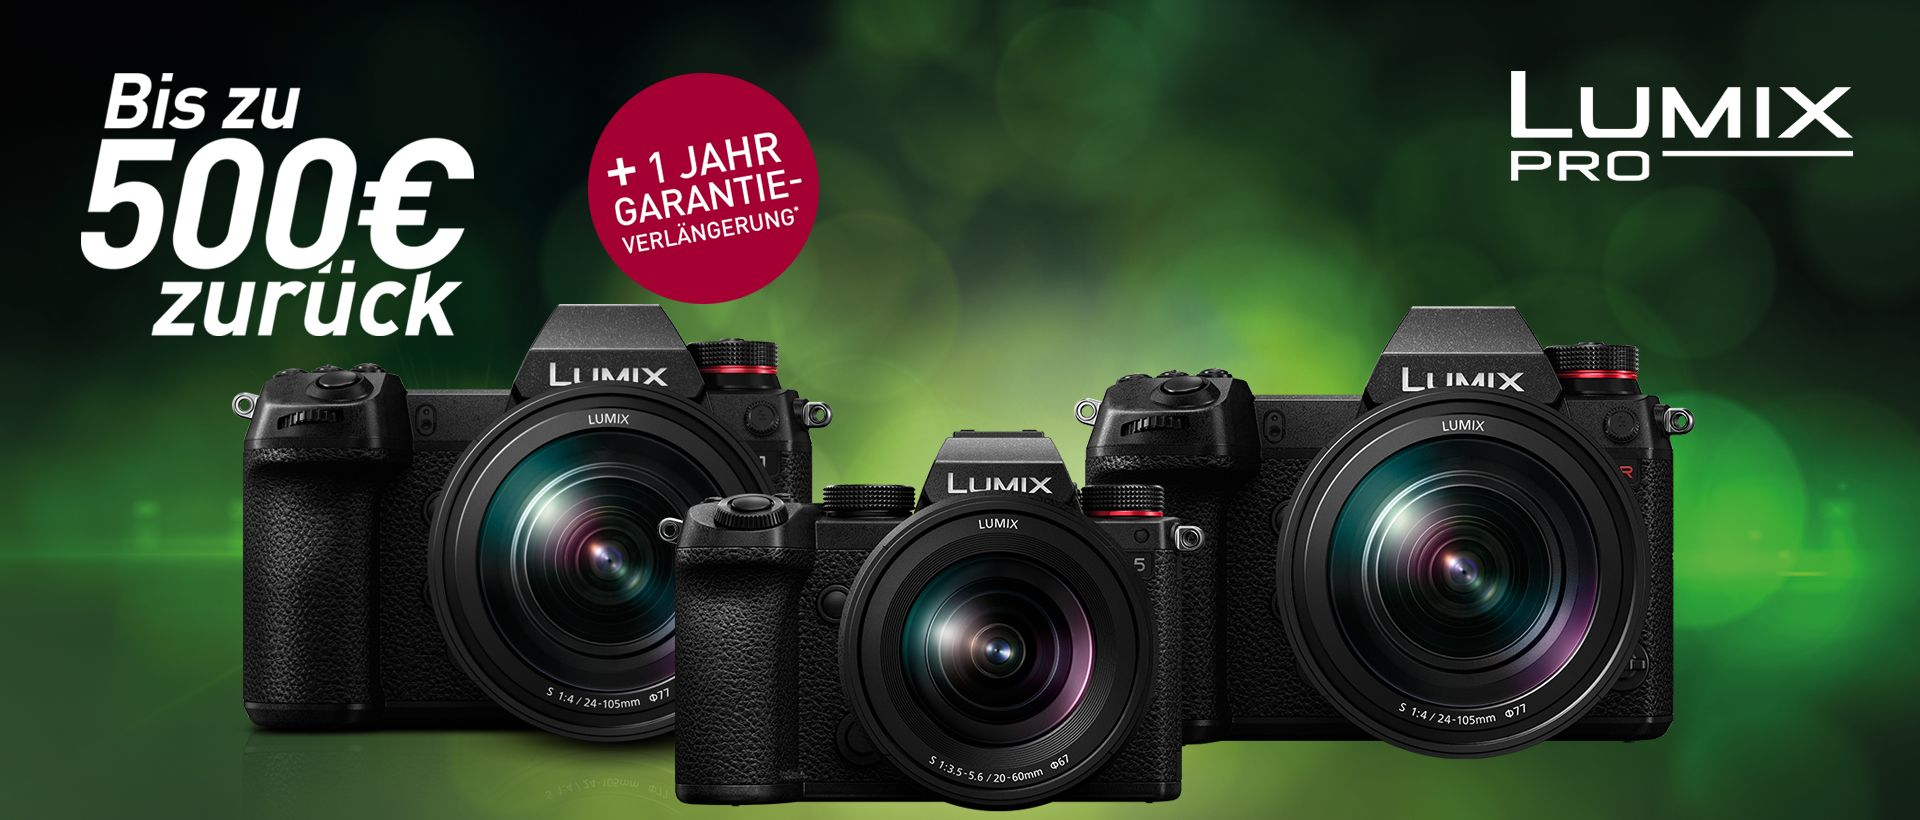 Panasonic Lumix S Aktion